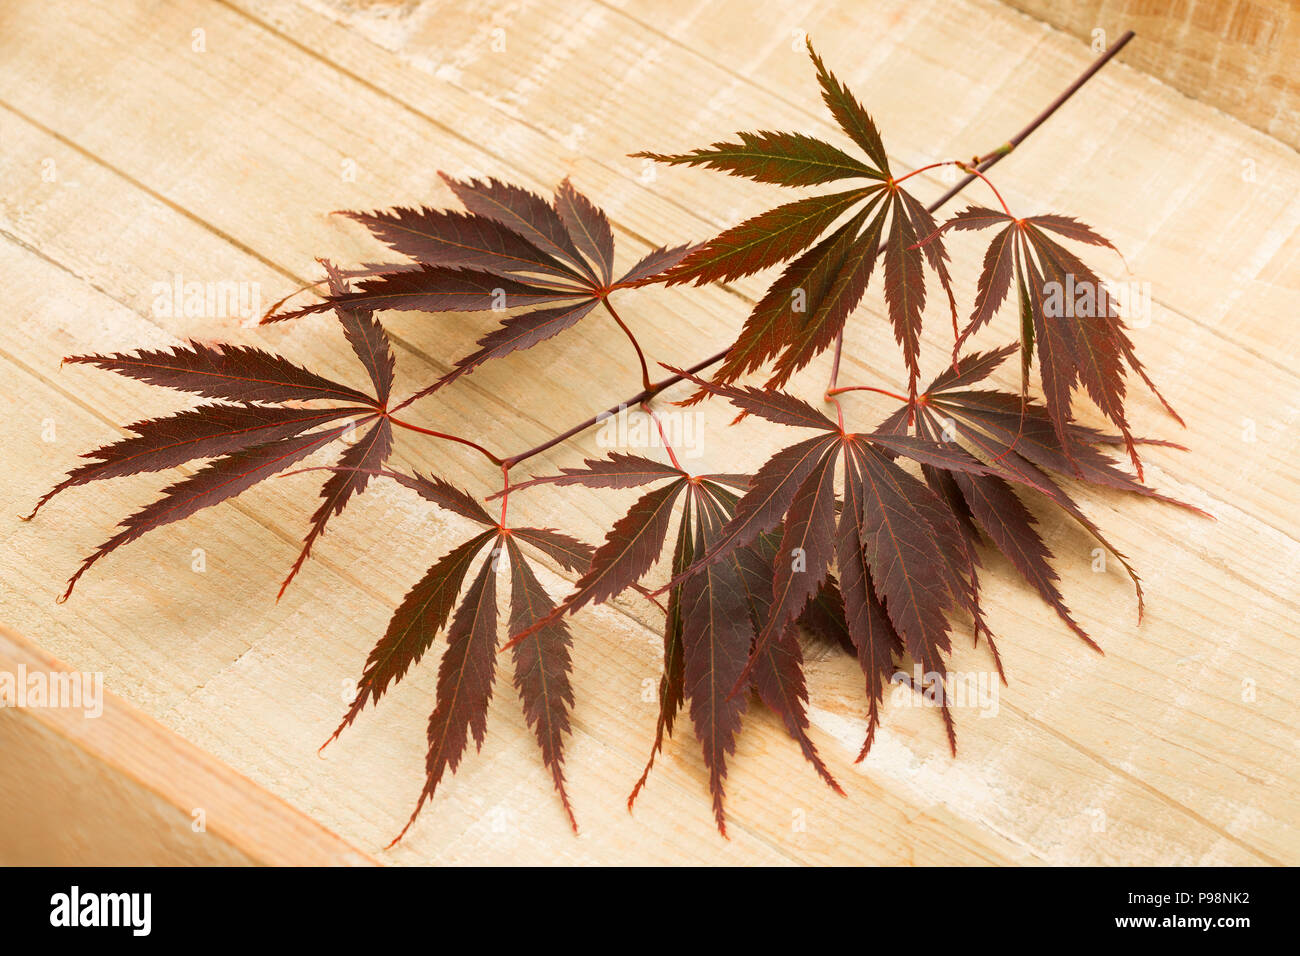 Single twig of fresh brown Japanese maple leaves on a wooden background - Stock Image